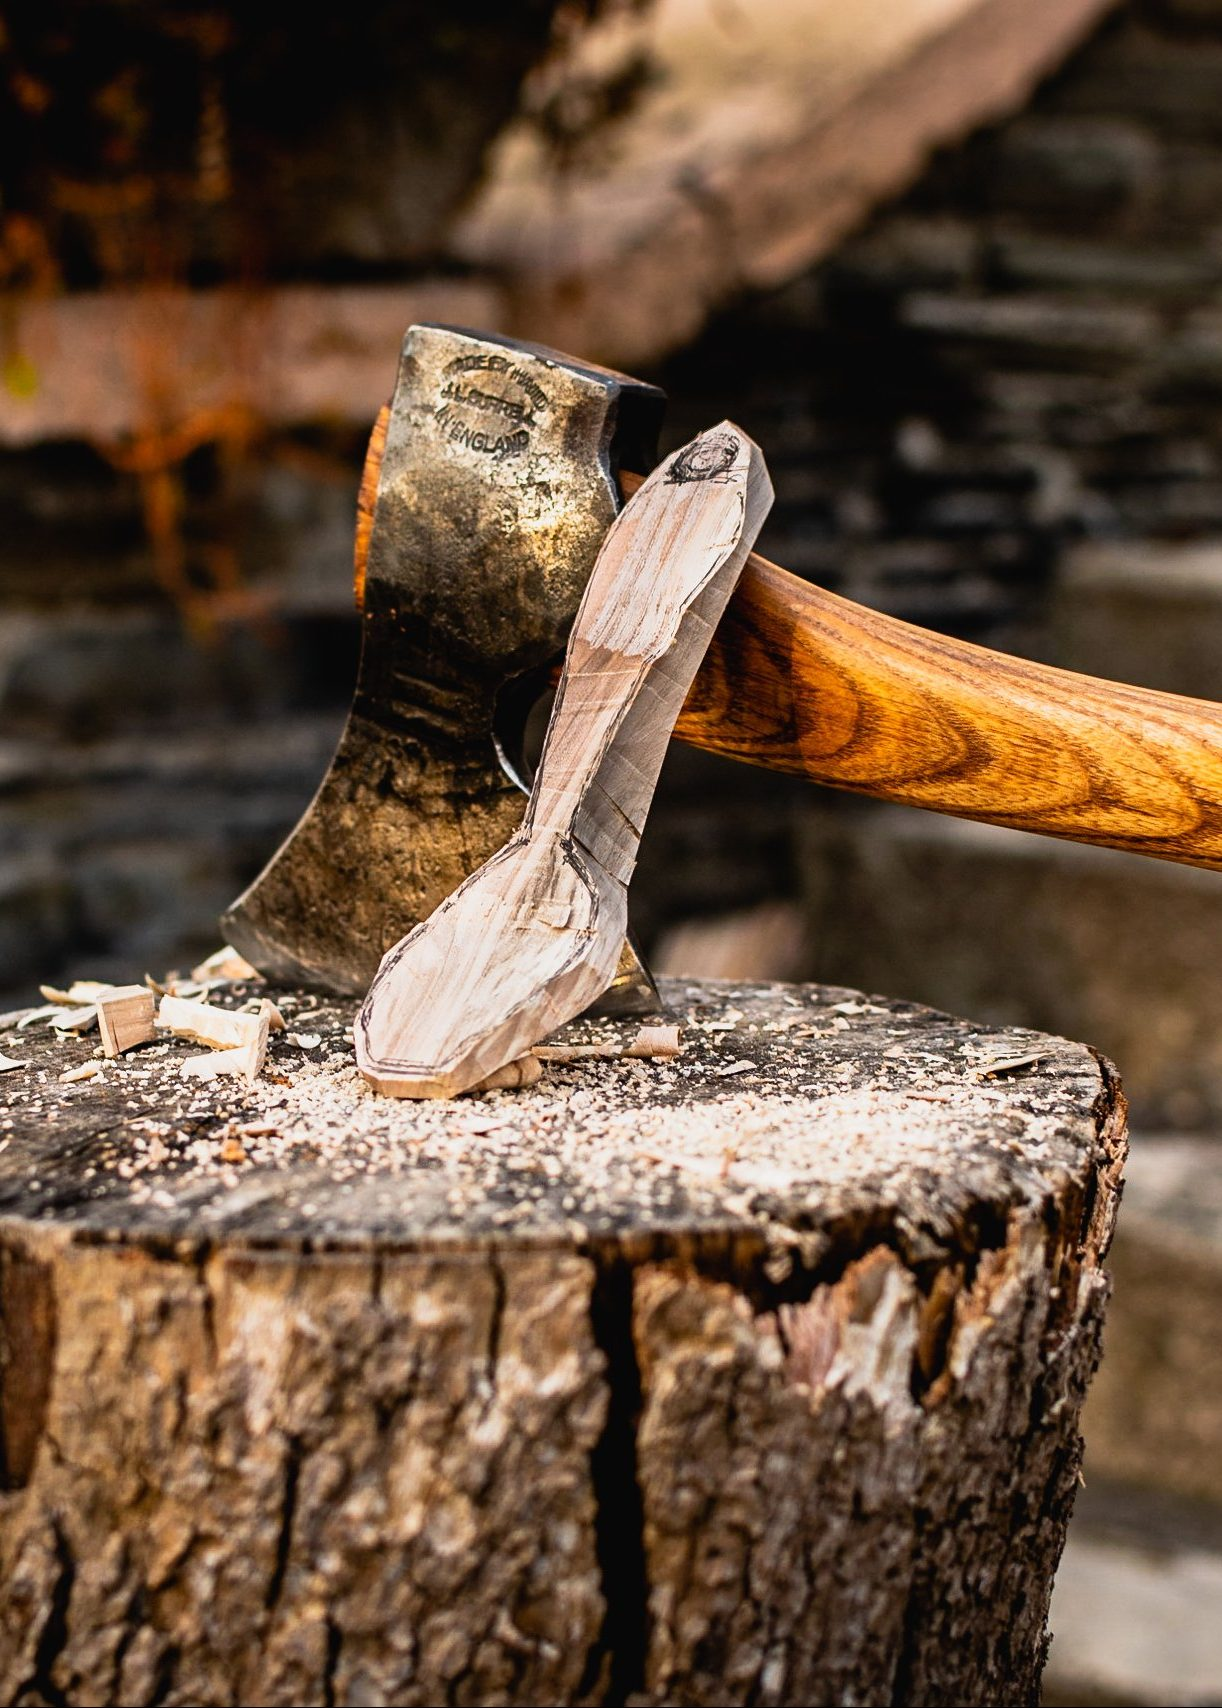 partly-carved wooden spoon resting on an axe